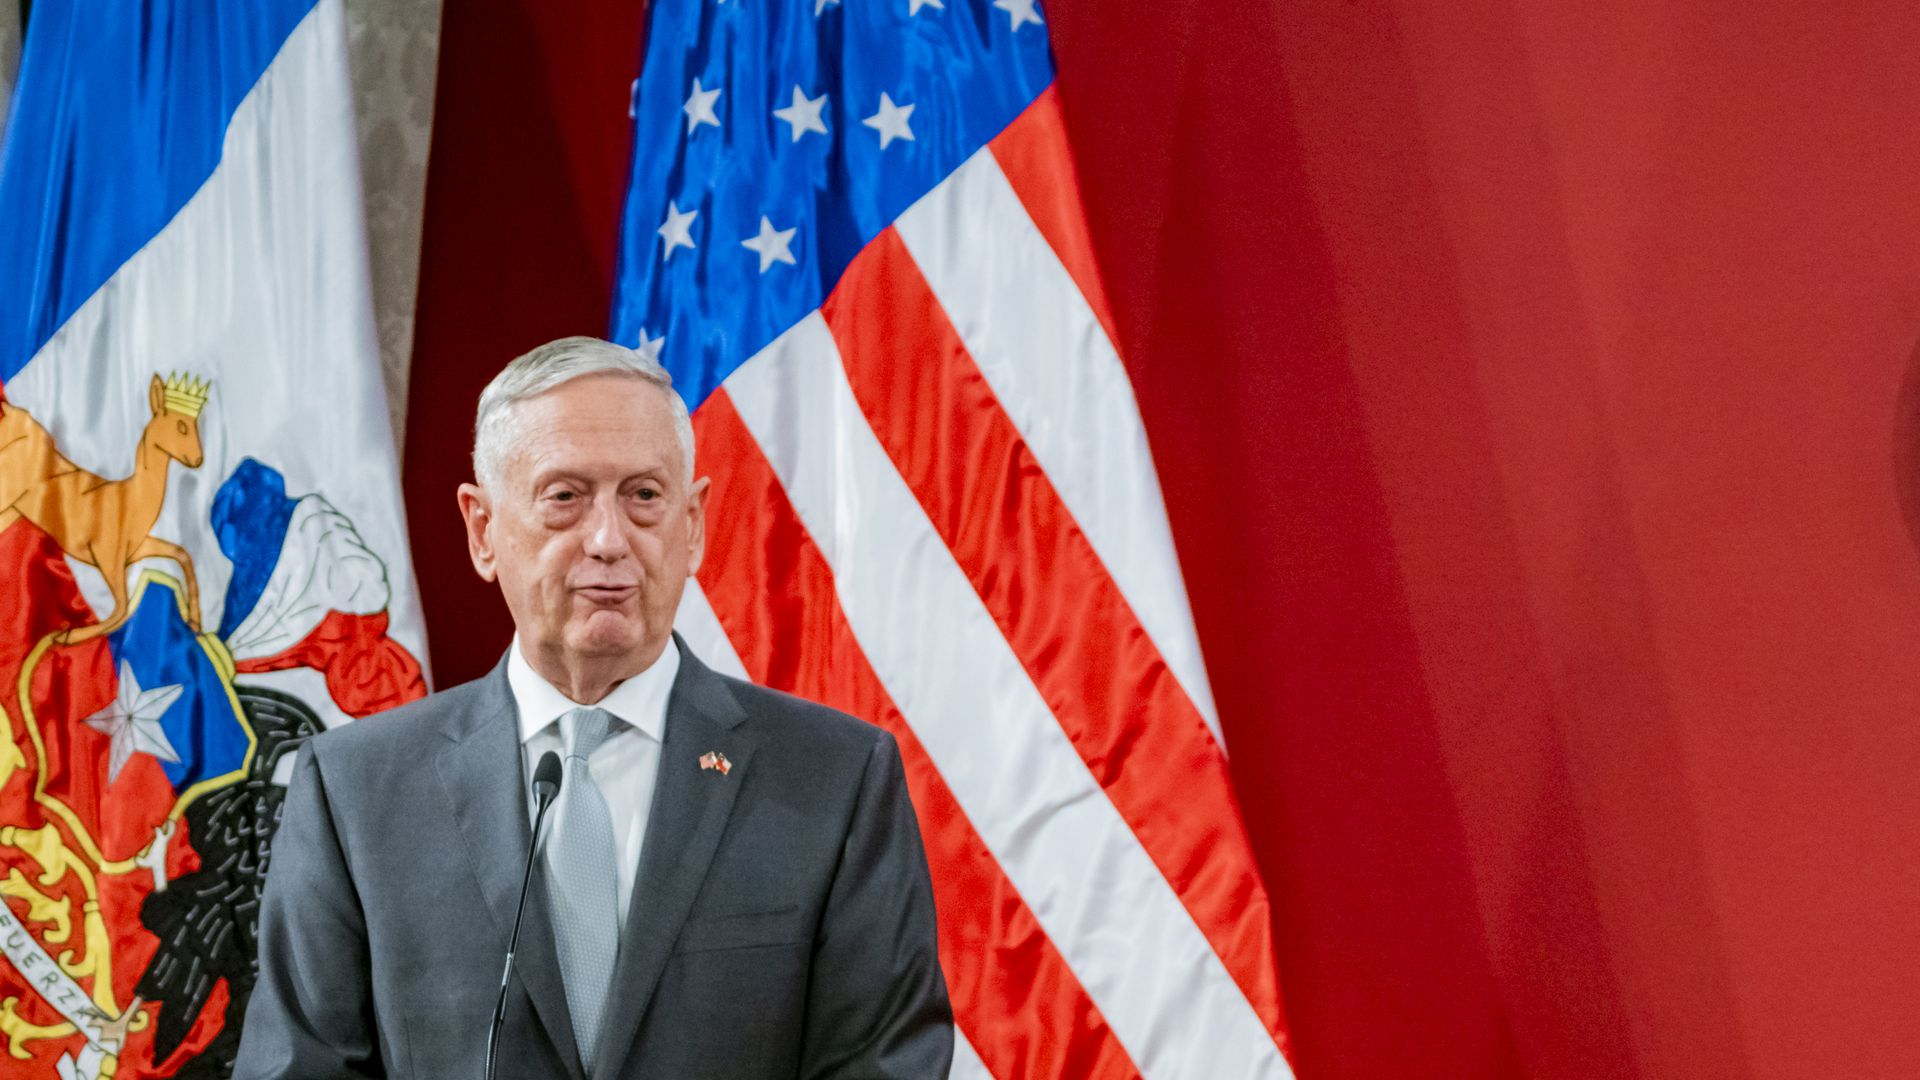 Jim Mattis purses his lips standing before a red background and two flags